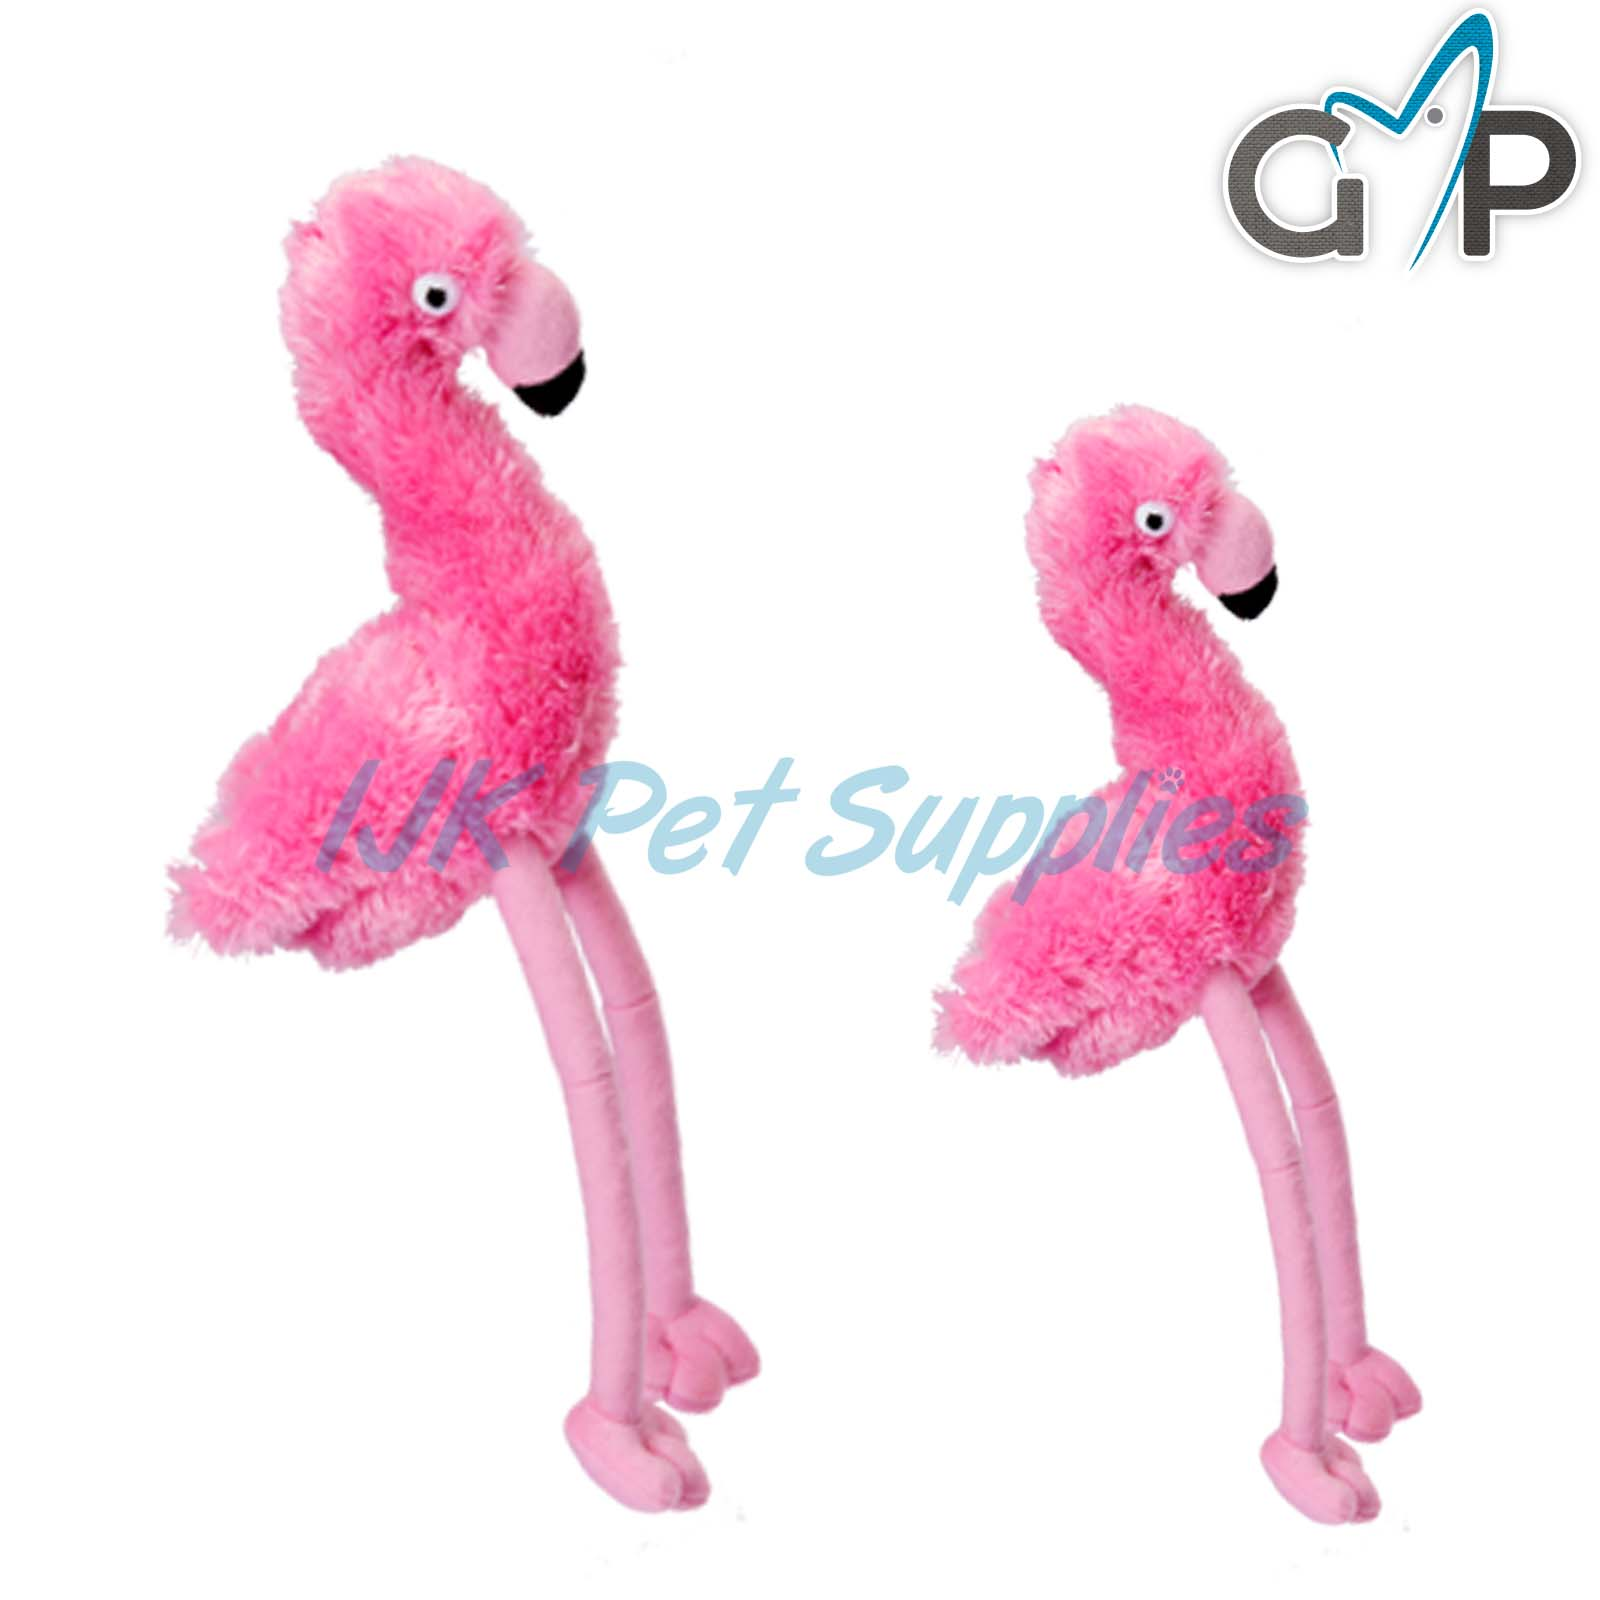 Details about Gor Pets Hugs Pink Flamingo Plush Comfort Cuddle Dog Puppy Crinkle Squeaky Toy